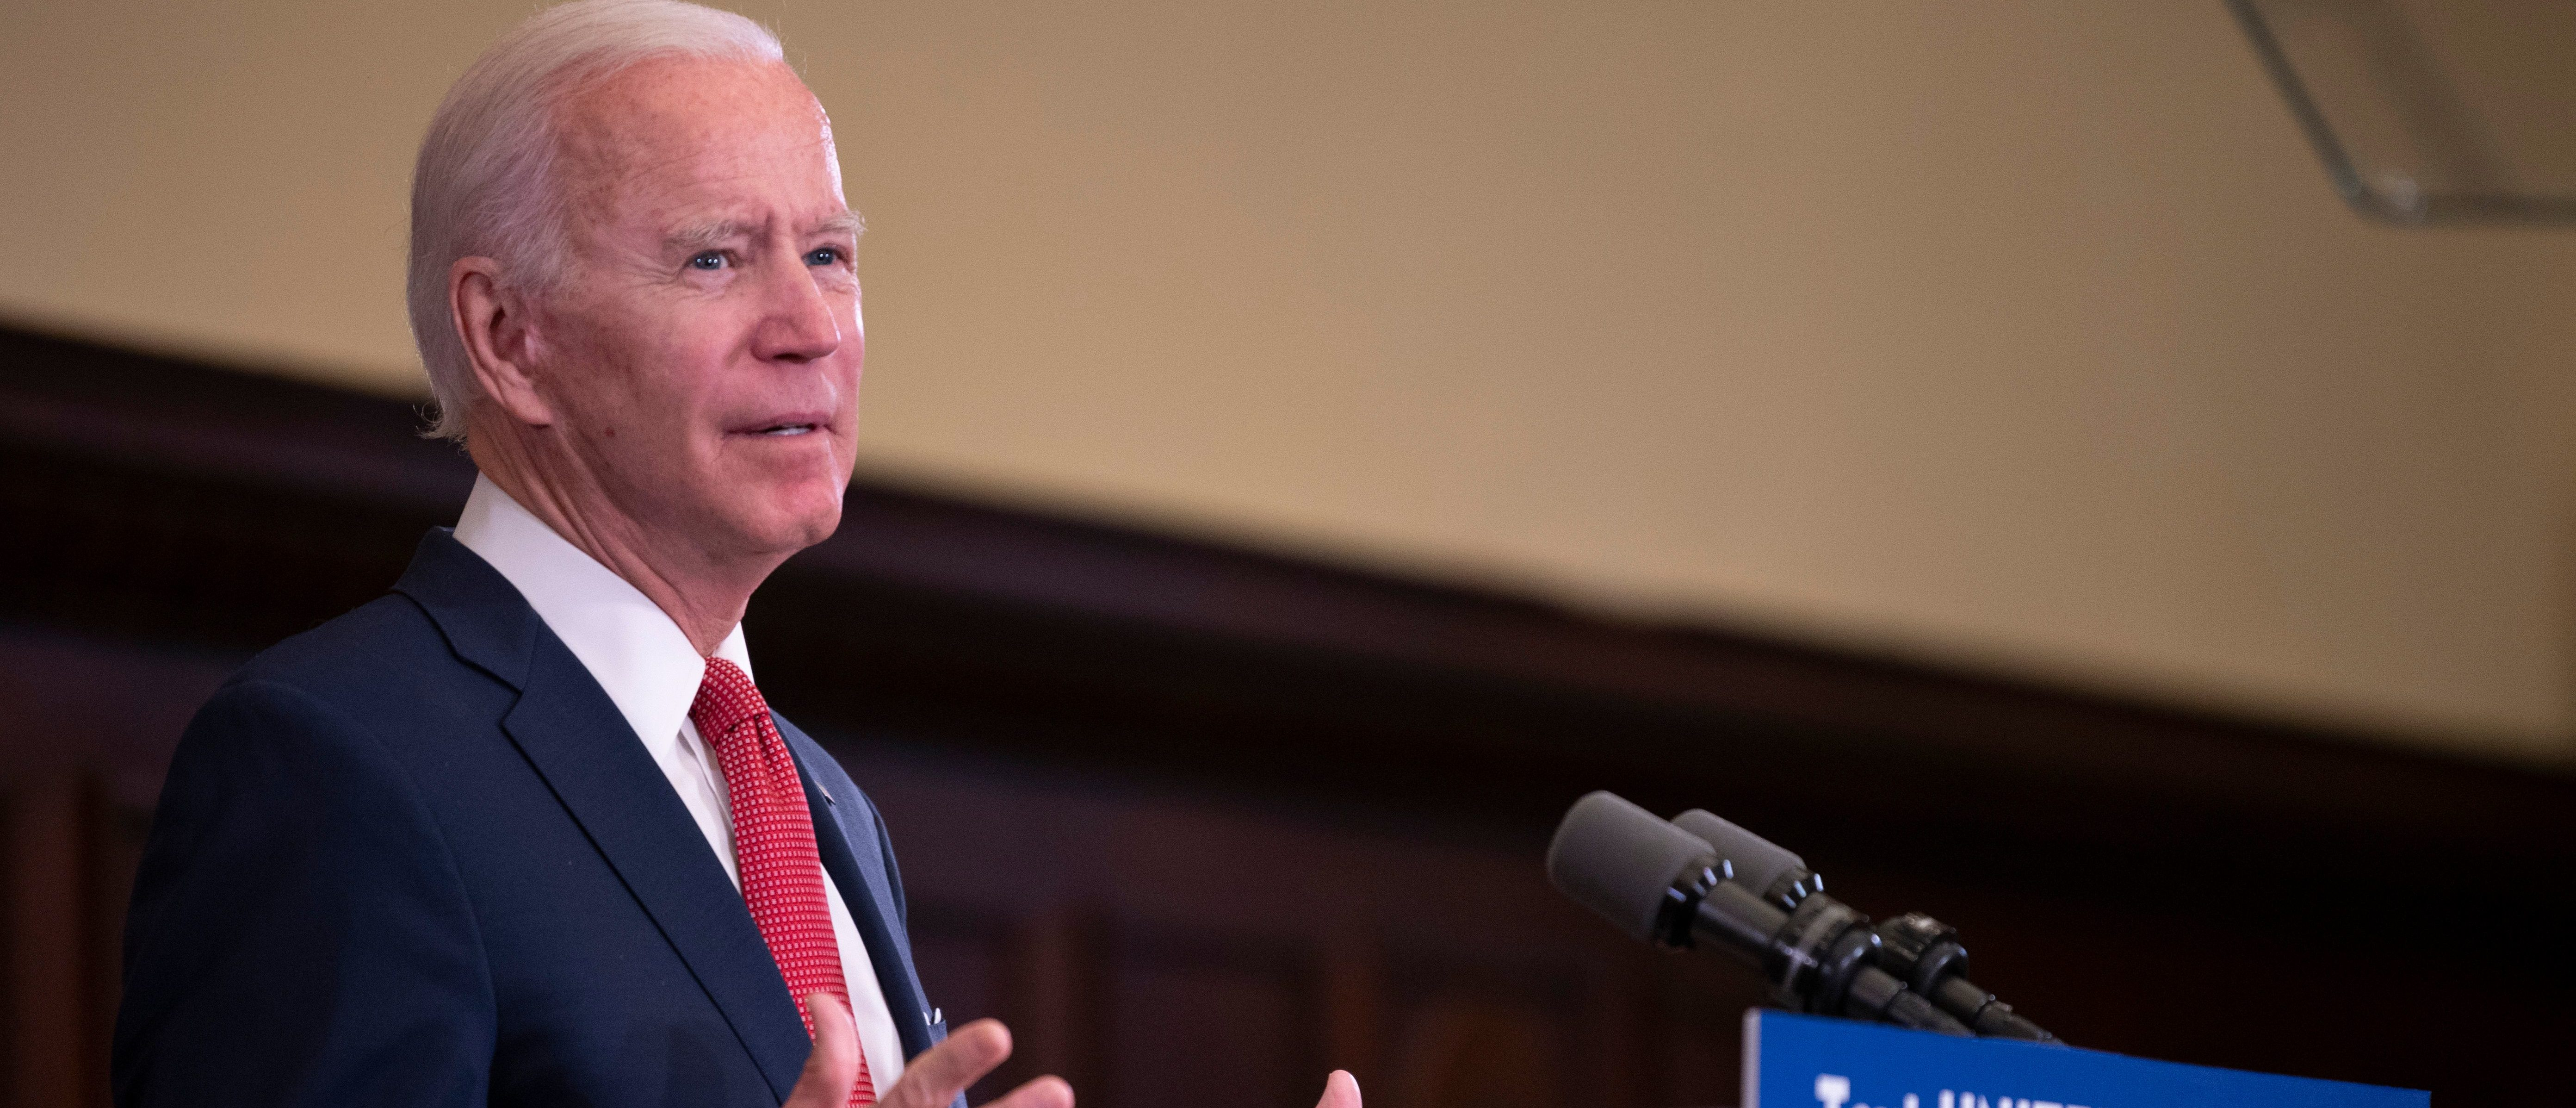 """Former vice president and Democratic presidential candidate Joe Biden speaks about the unrest across the country from Philadelphia City Hall on June 2, 2020, in Philadelphia, Pennsylvania, contrasting his leadership style with that of US President Donald Trump, and calling George Floyd's death """"a wake-up call for our nation."""" (Photo by JIM WATSON/AFP via Getty Images)"""